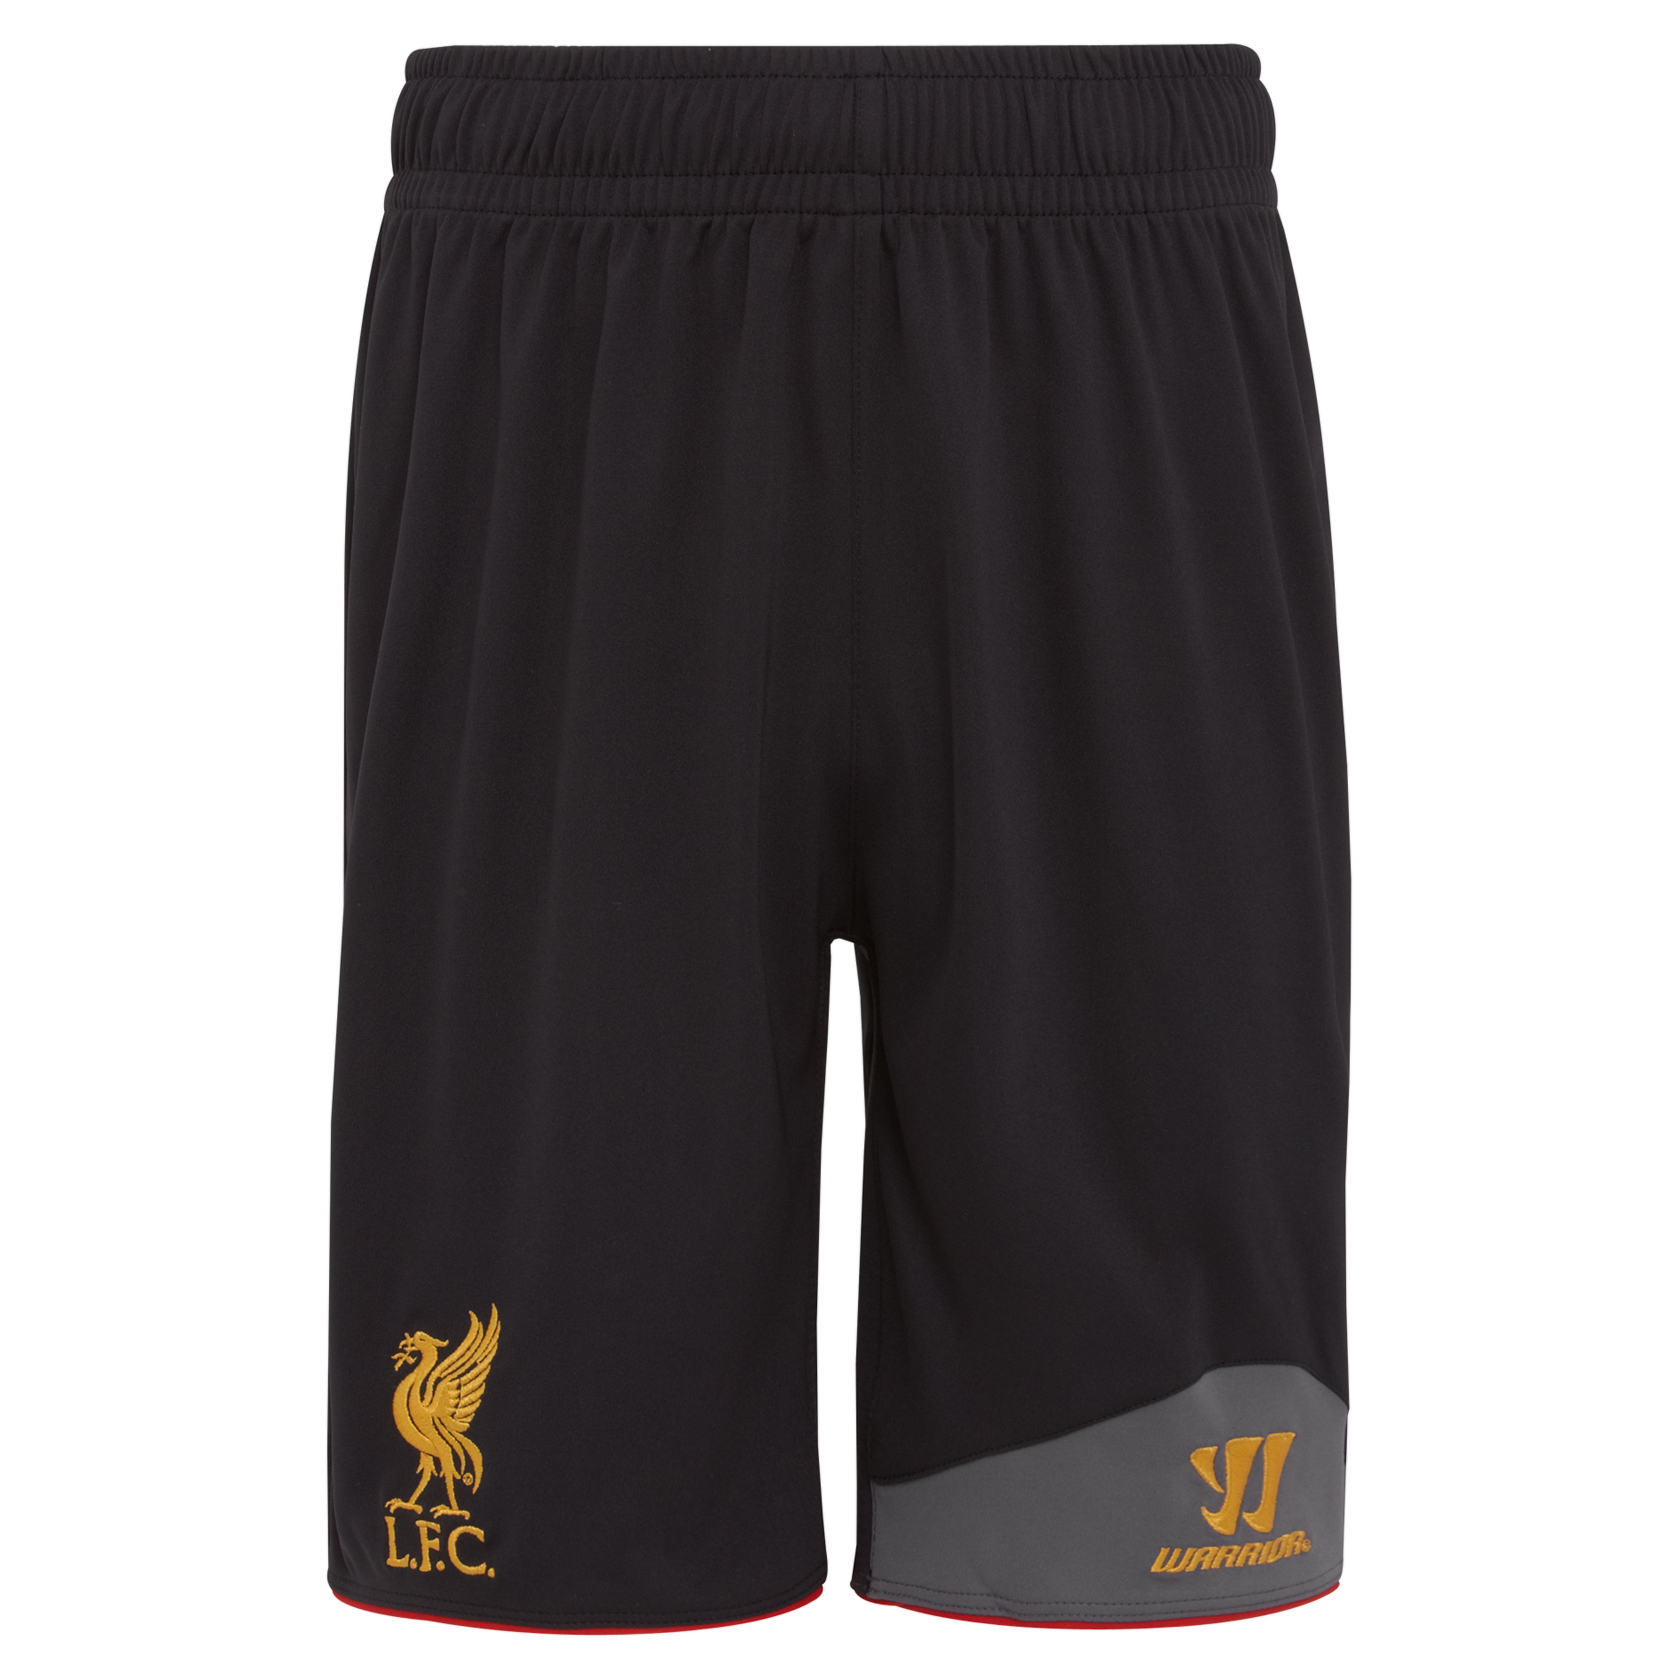 Liverpool Away Short 2012/13 - Youths